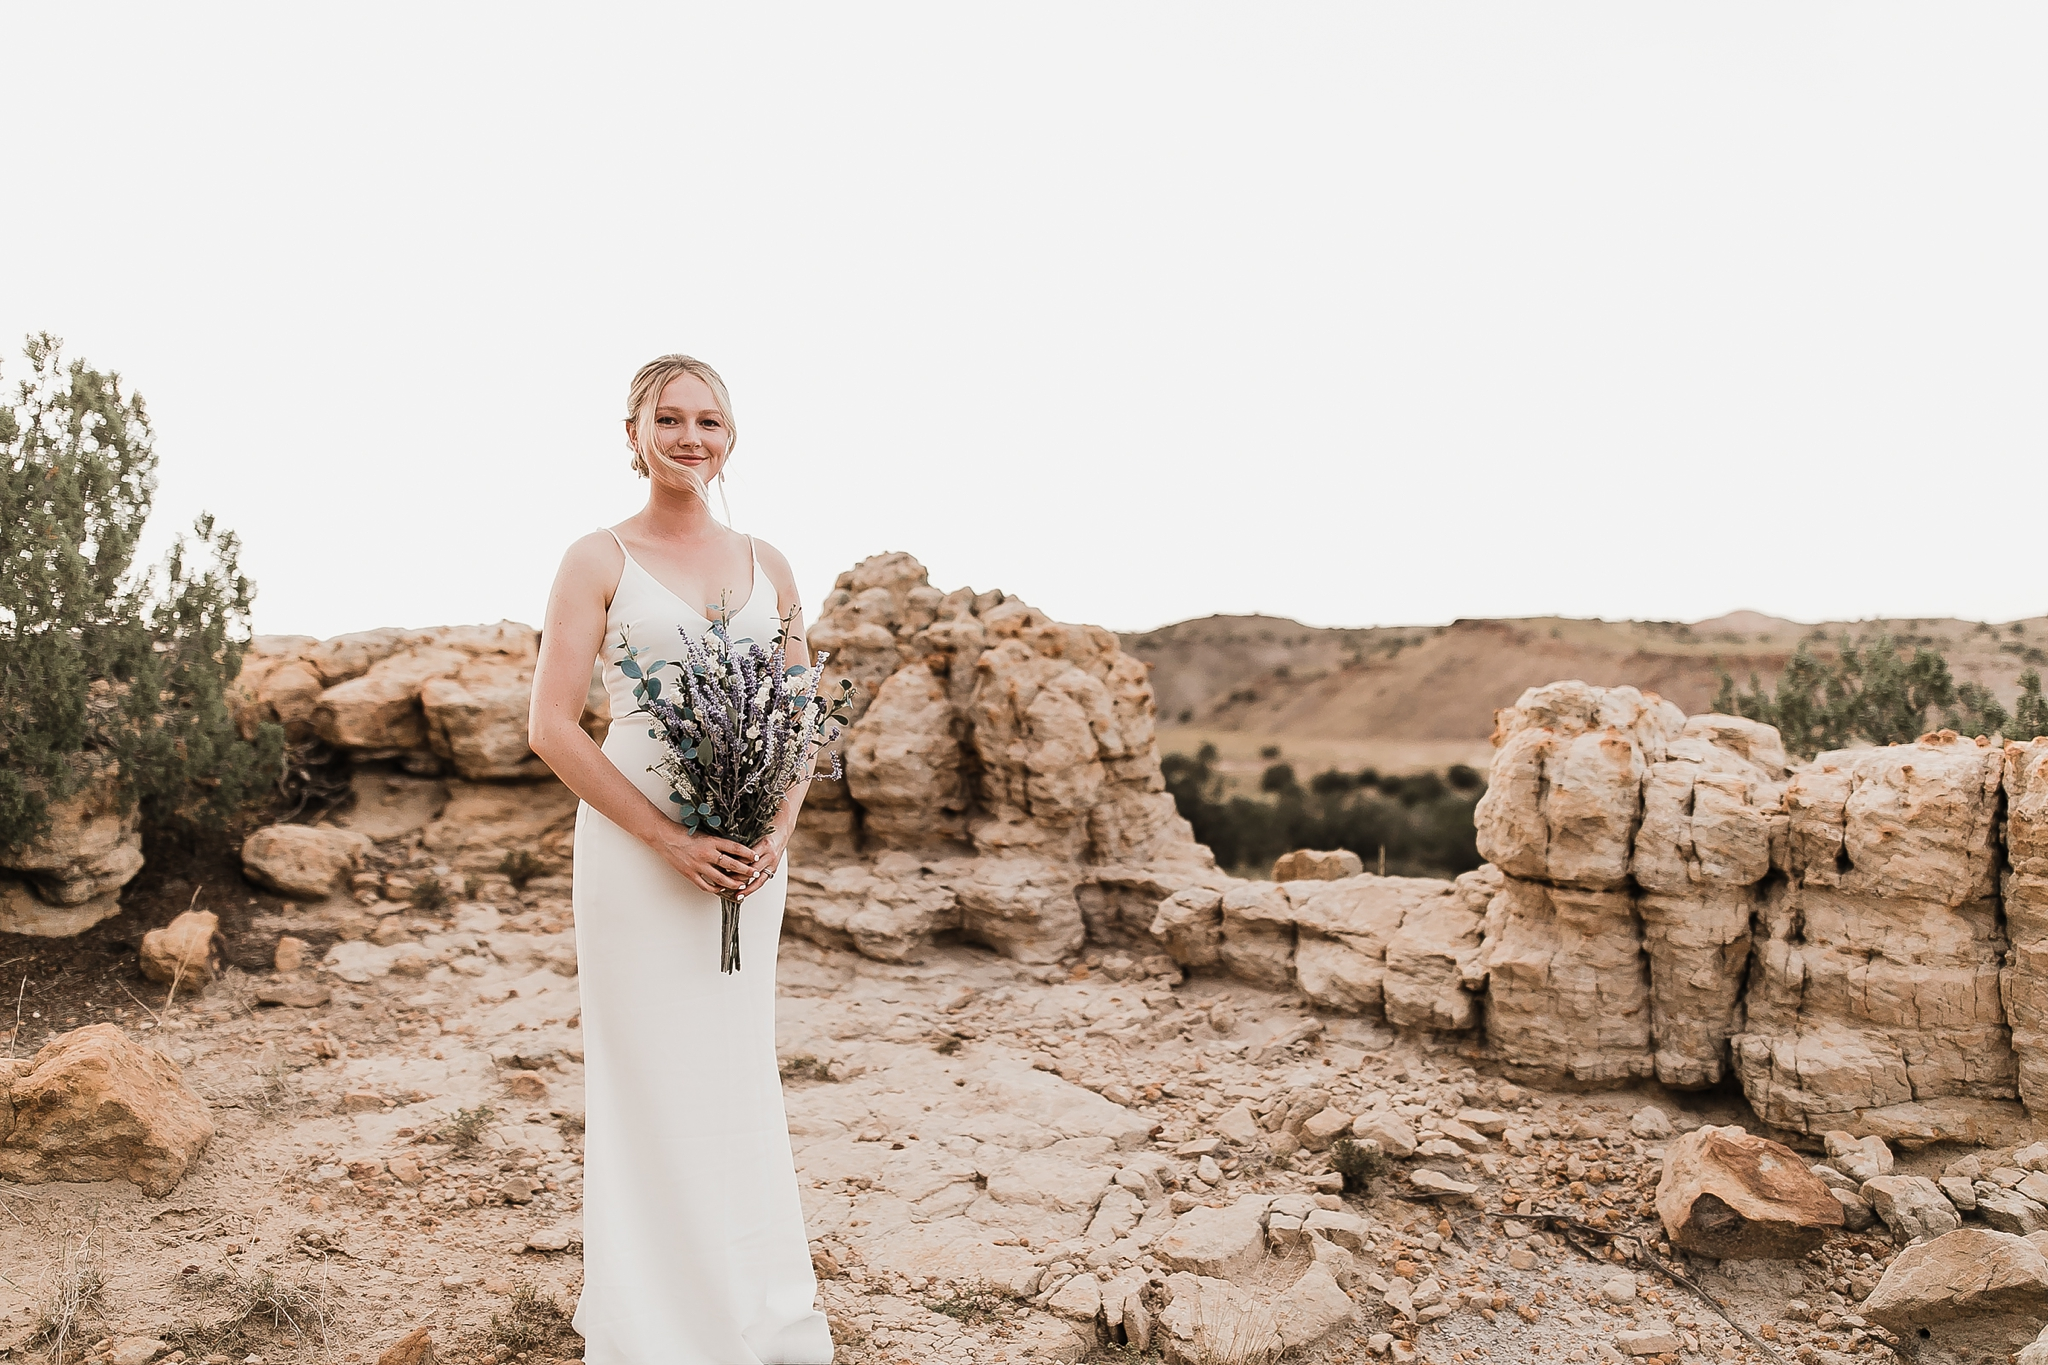 Alicia+lucia+photography+-+albuquerque+wedding+photographer+-+santa+fe+wedding+photography+-+new+mexico+wedding+photographer+-+new+mexico+wedding+-+new+mexico+elopement+-+elopment+-+mountain+elopement_0011.jpg